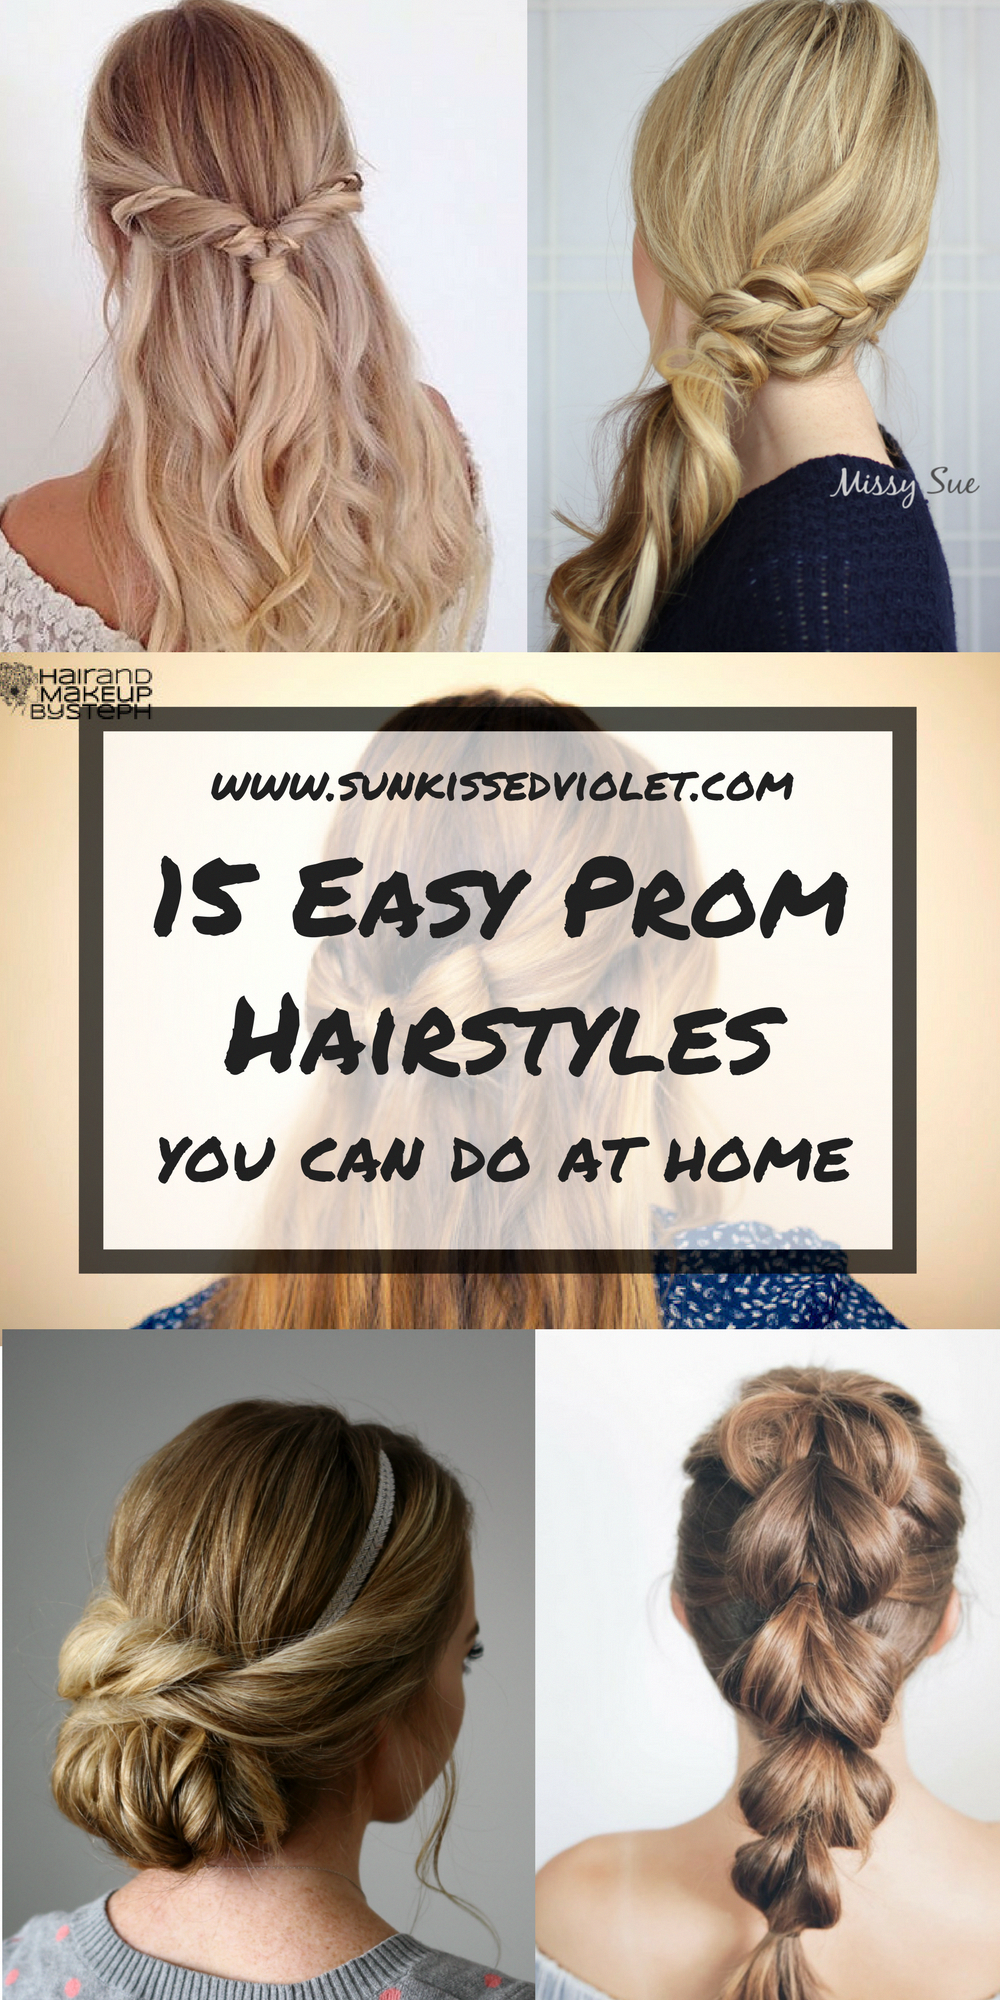 11 Easy Prom Hairstyles for Long Hair You Can DIY At Home Detailed